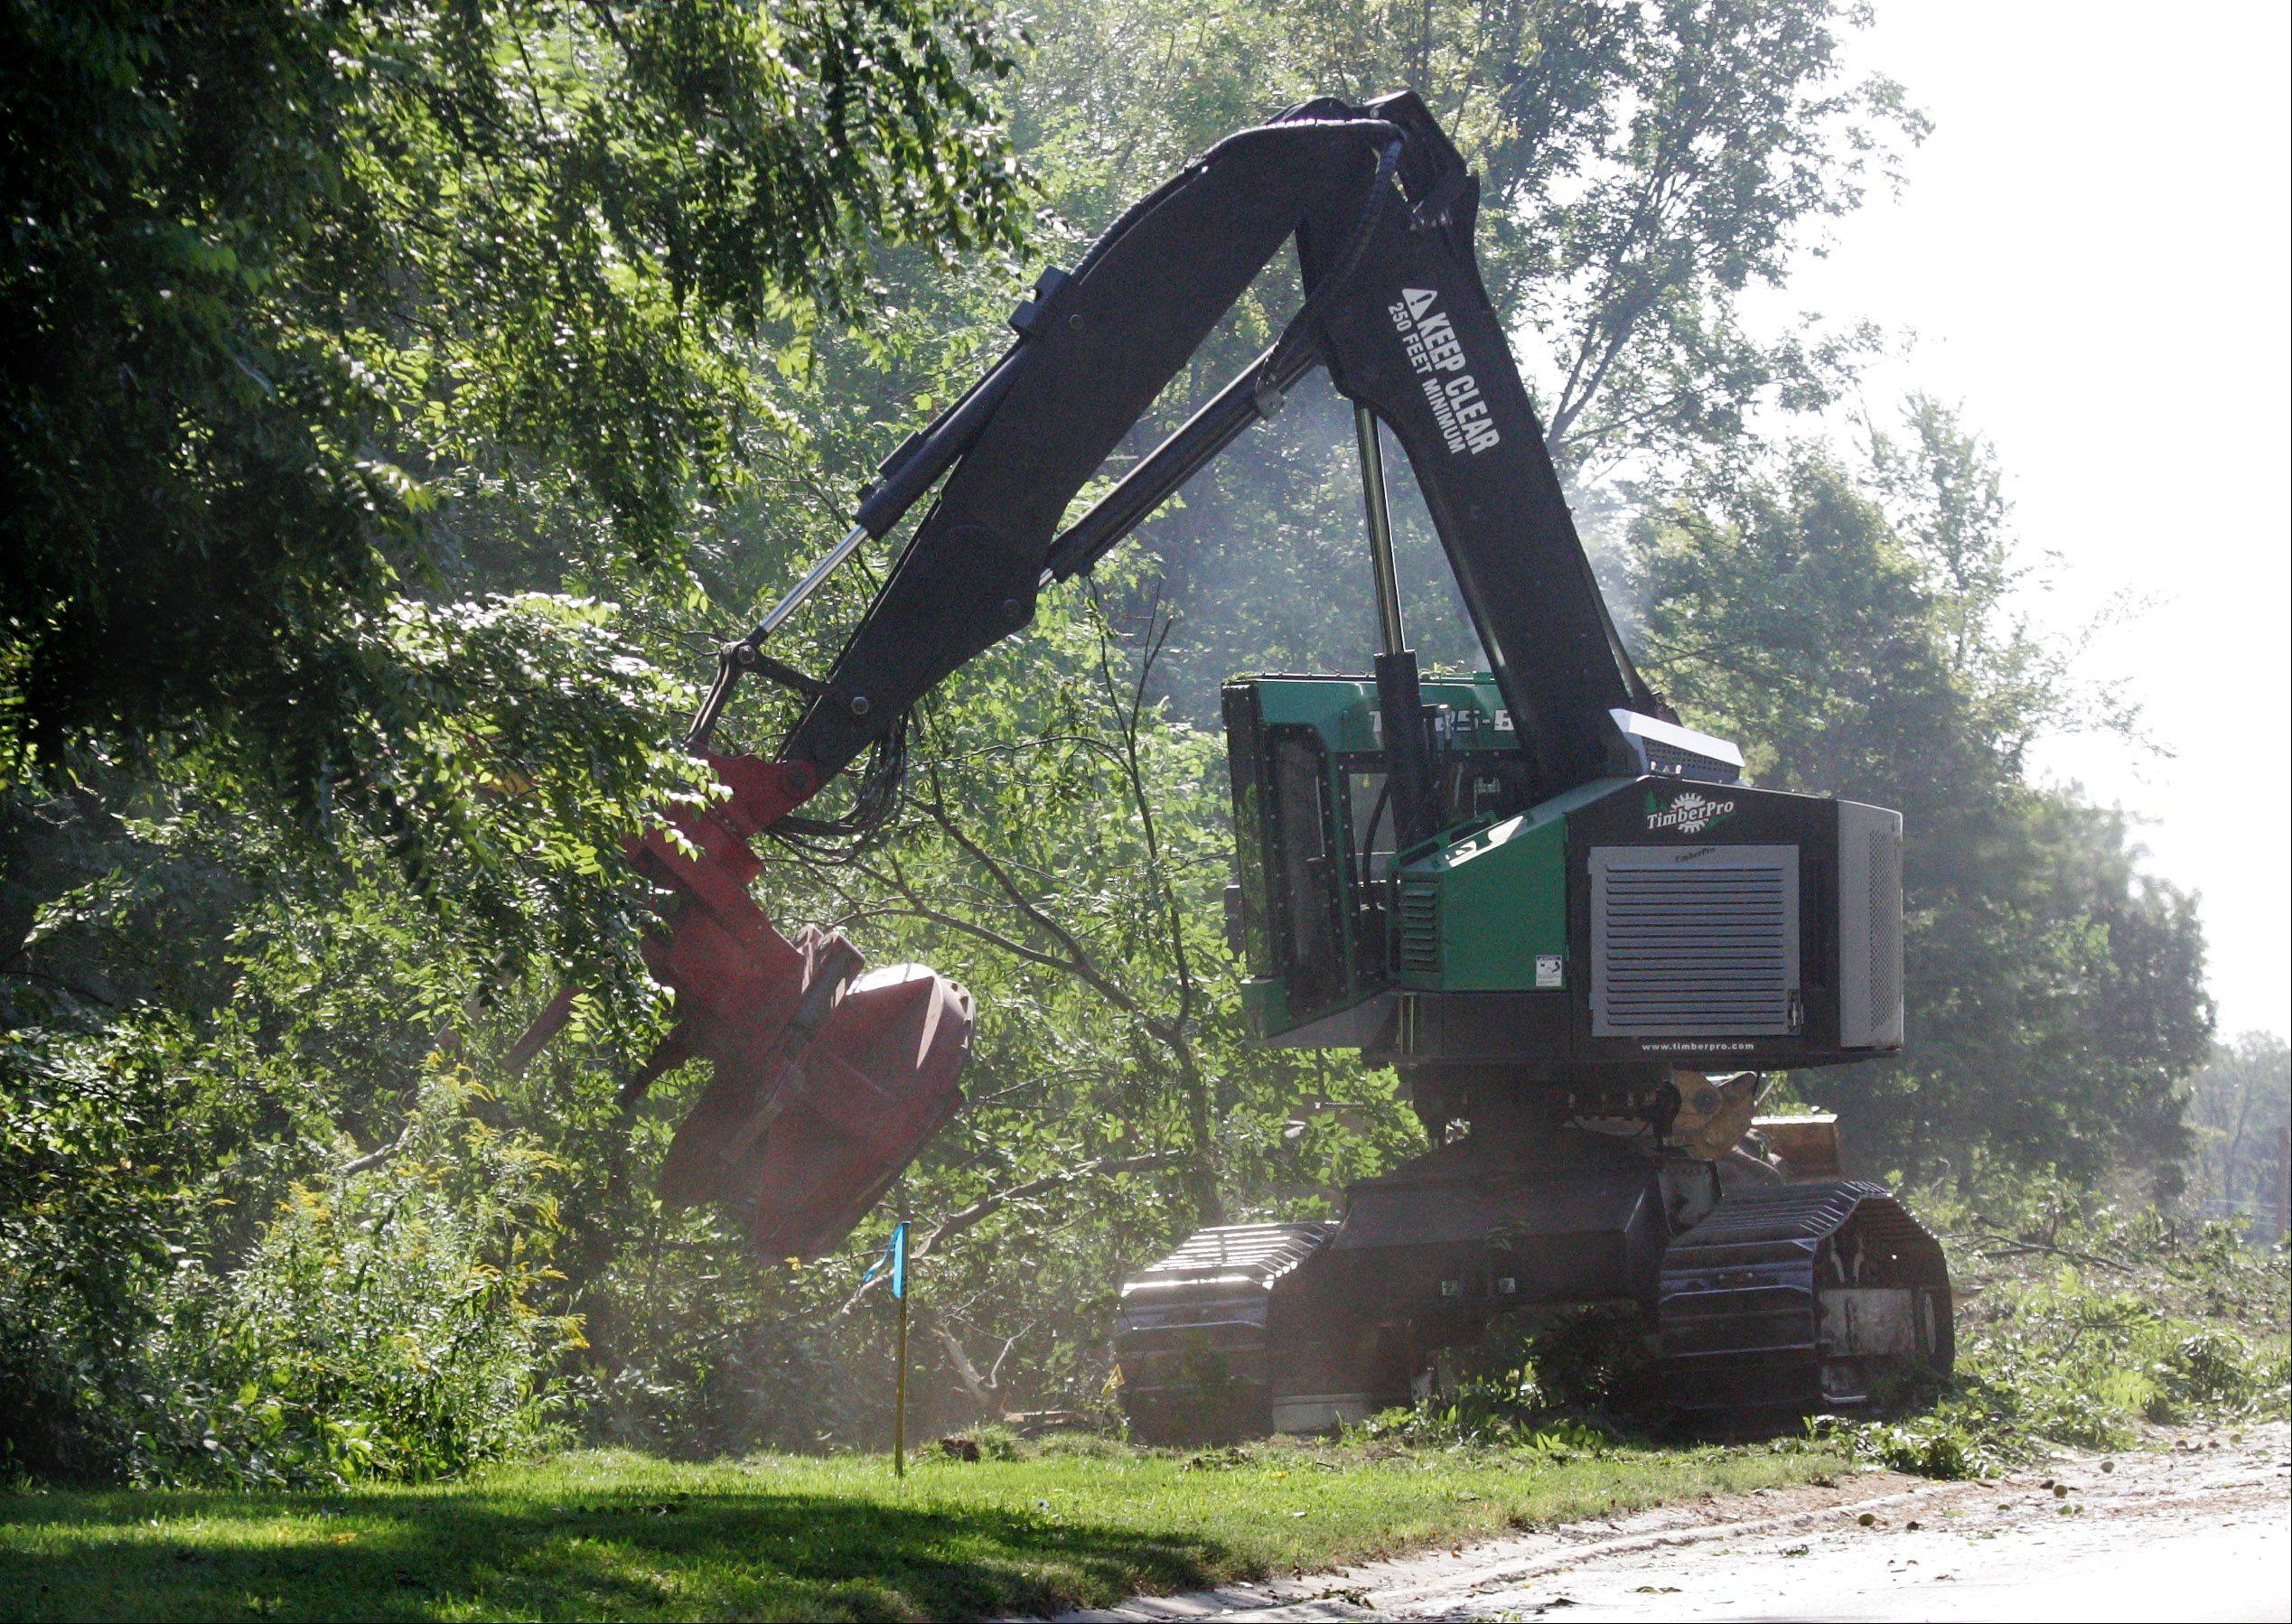 Equipment cuts down a tree as crews from Clean Cut Tree Service begin removing trees Monday along Milwaukee Avenue north of Route 137 in Libertyville.